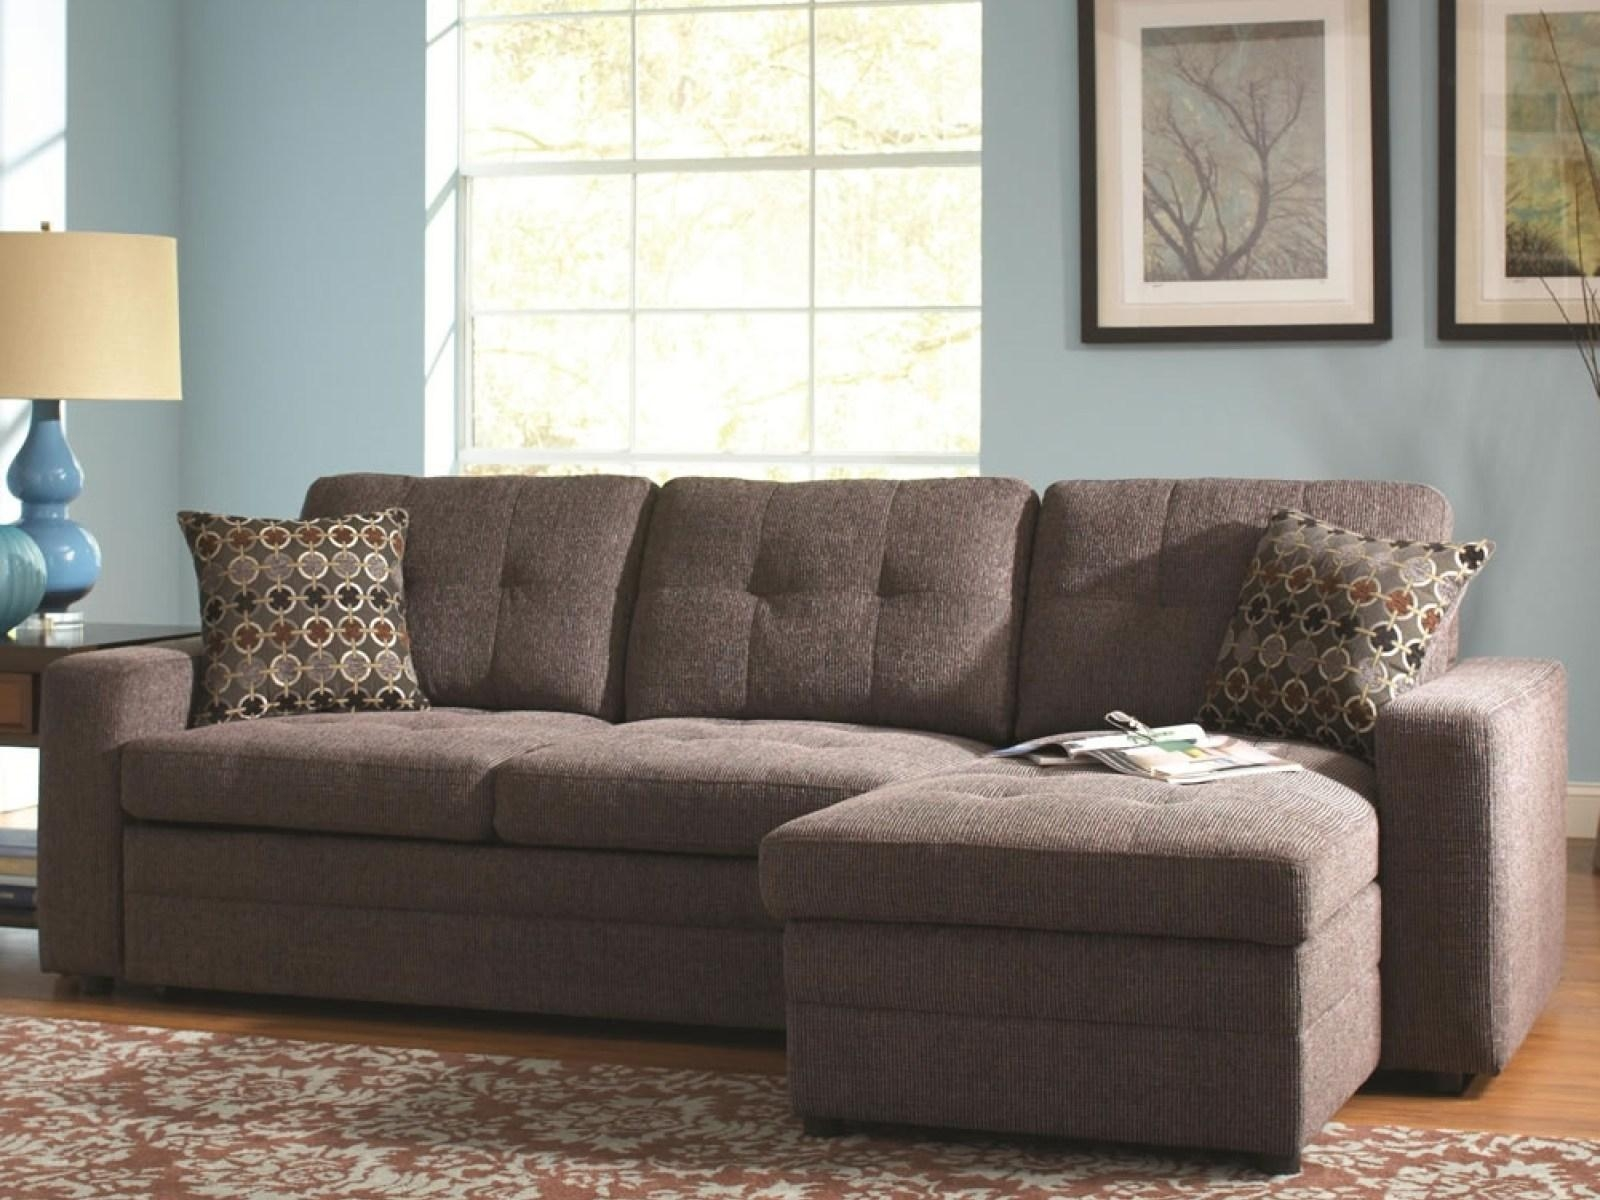 ☆▻ Sofa : 15 Good Looking Reclining Sectional Sofas For Small Throughout Sectional Sofas In Small Spaces (Image 1 of 20)